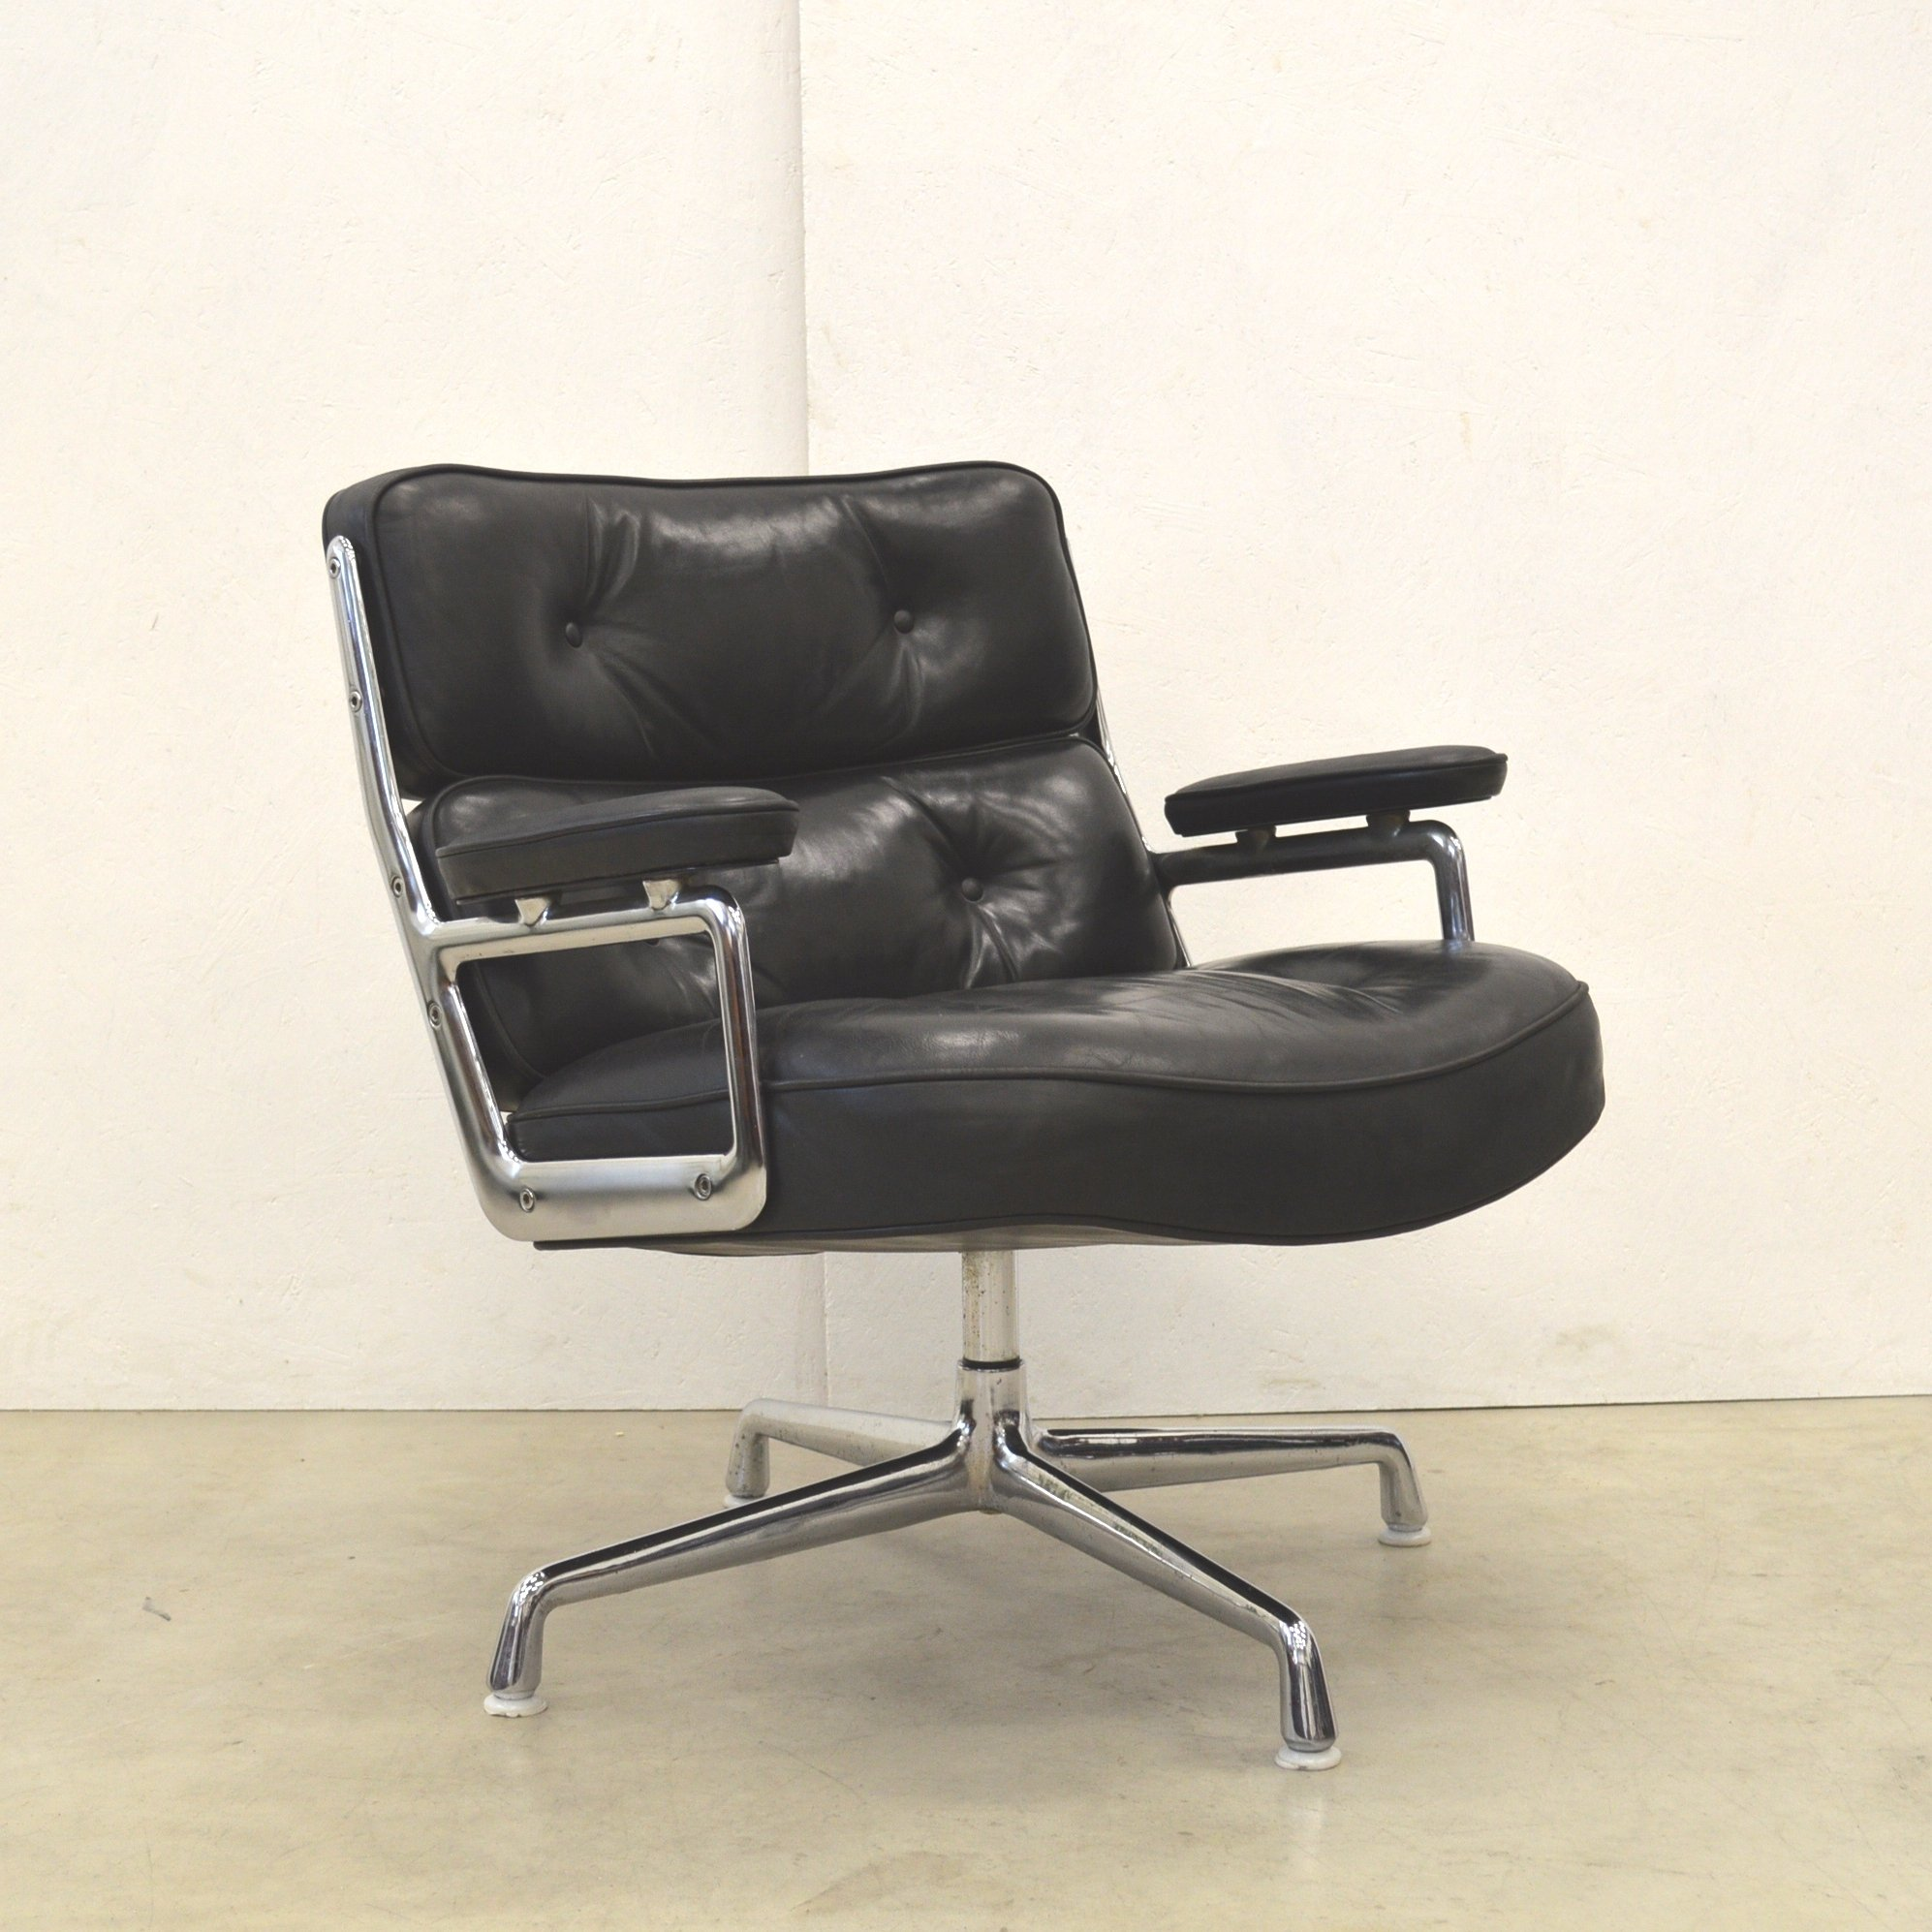 ES105 Lobby lounge chair by Charles & Ray Eames for Herman Miller 1960s